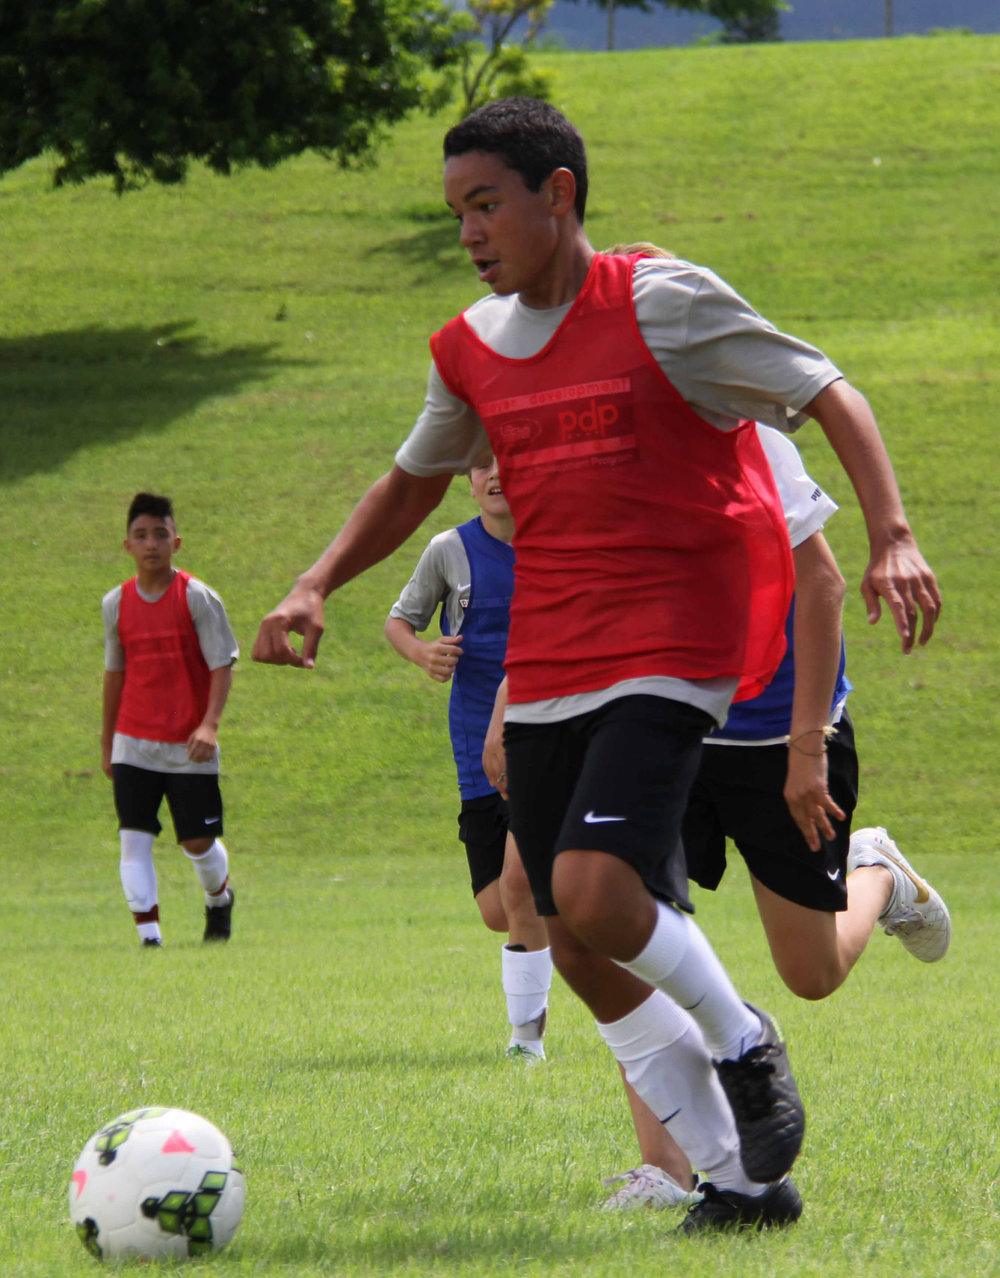 Buddy's son, Kahakuwaipolani Tolentino-Perry, competing in the innaugural US Club Soccer pdp—hosted by HSF.